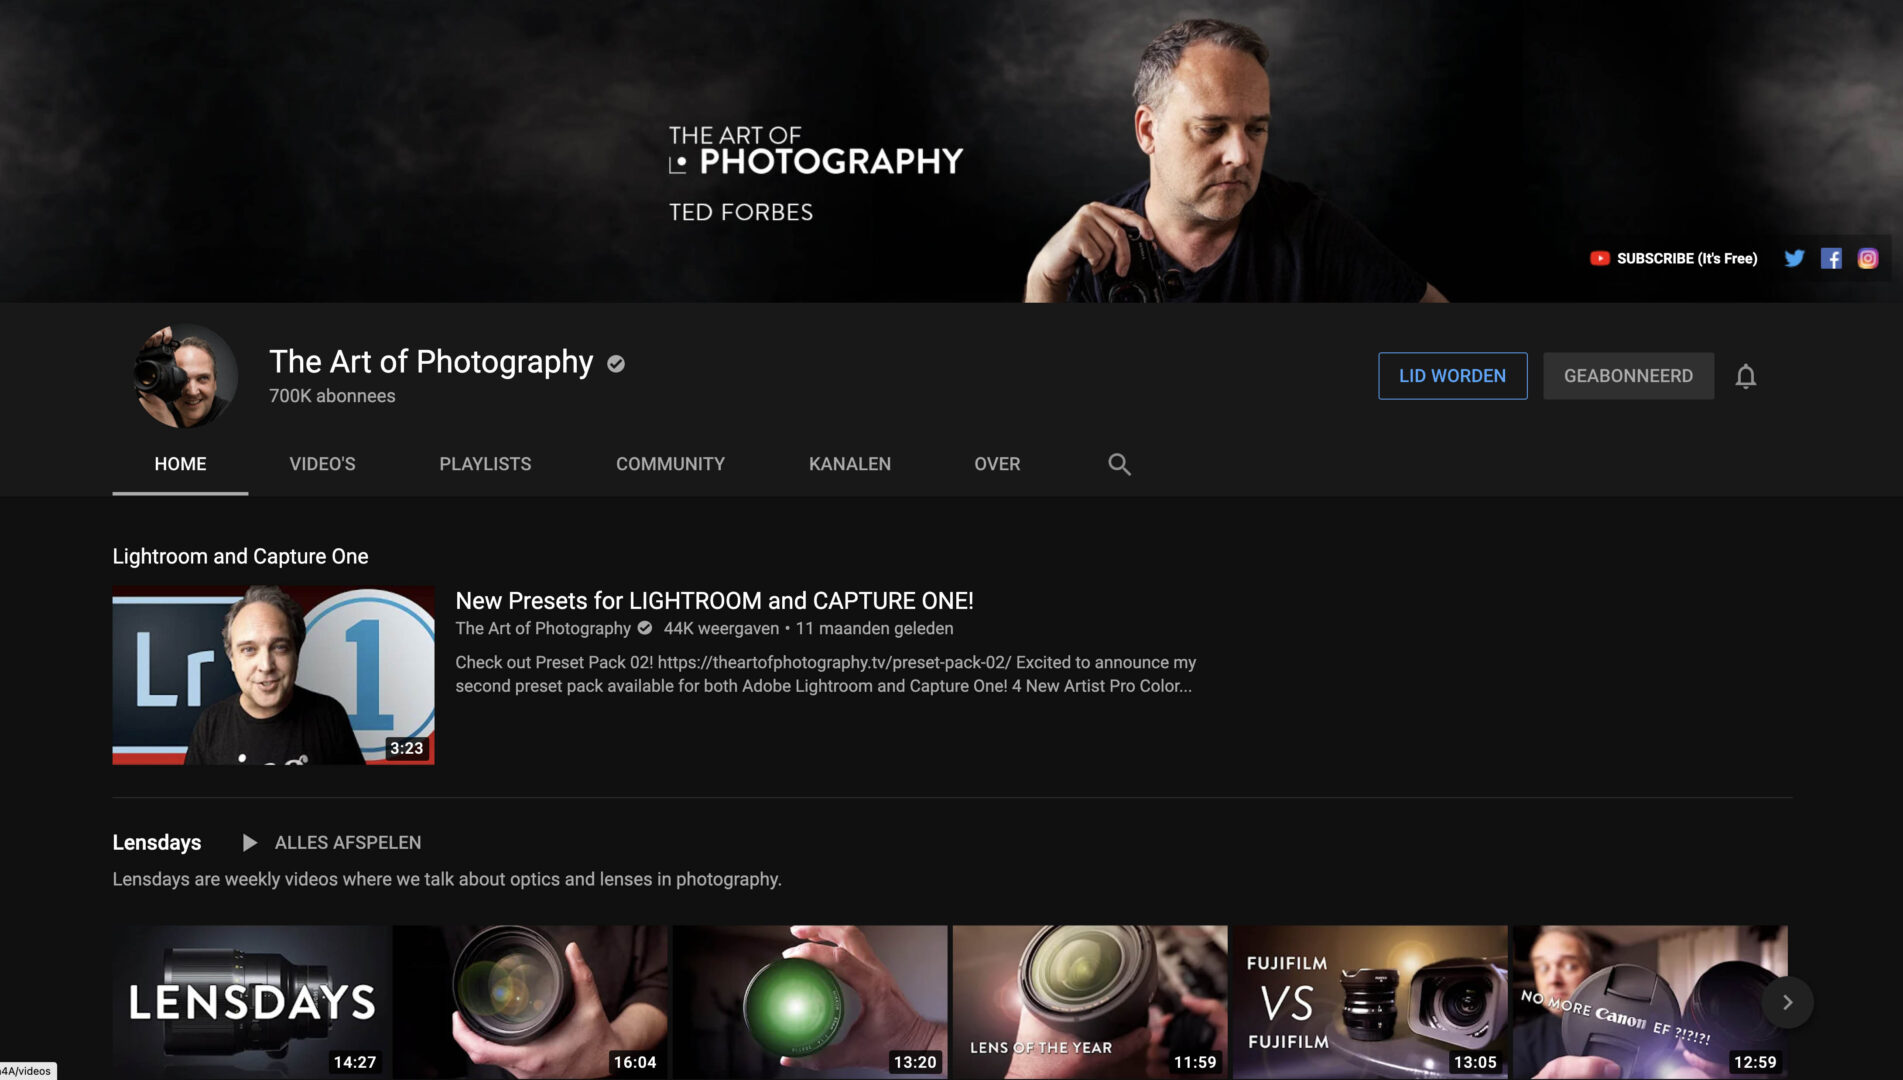 The art of photography-d6a39a1a